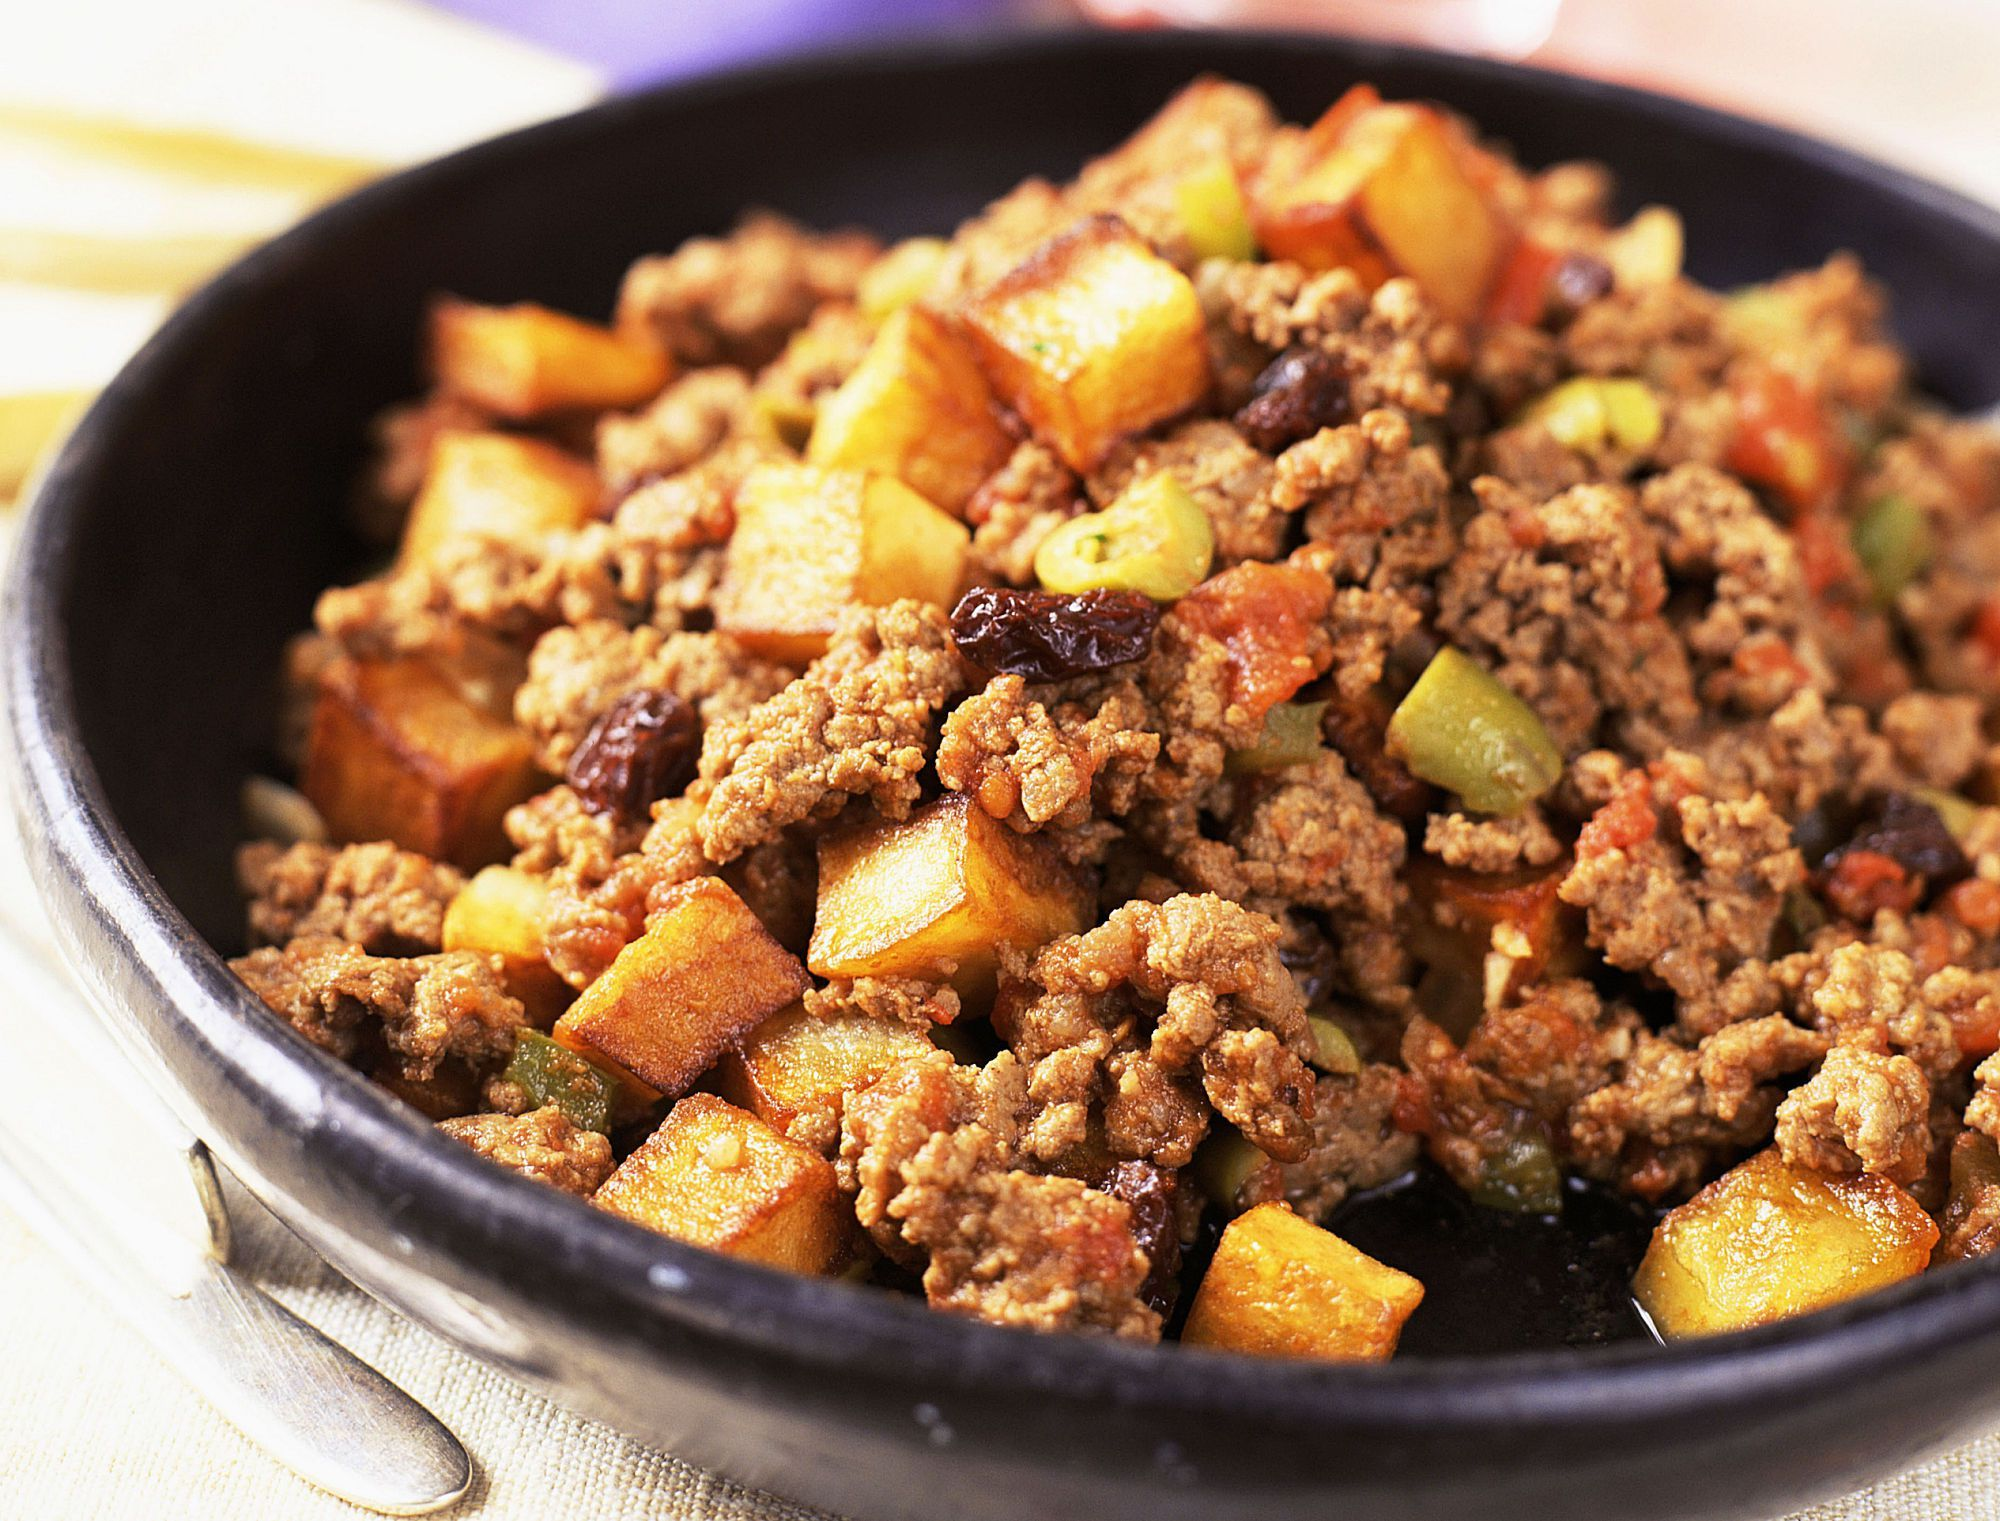 Picadillo mexican style recipe american dishes ground meat and meal ideas try this tasty version of the versatile latin american dish forumfinder Image collections